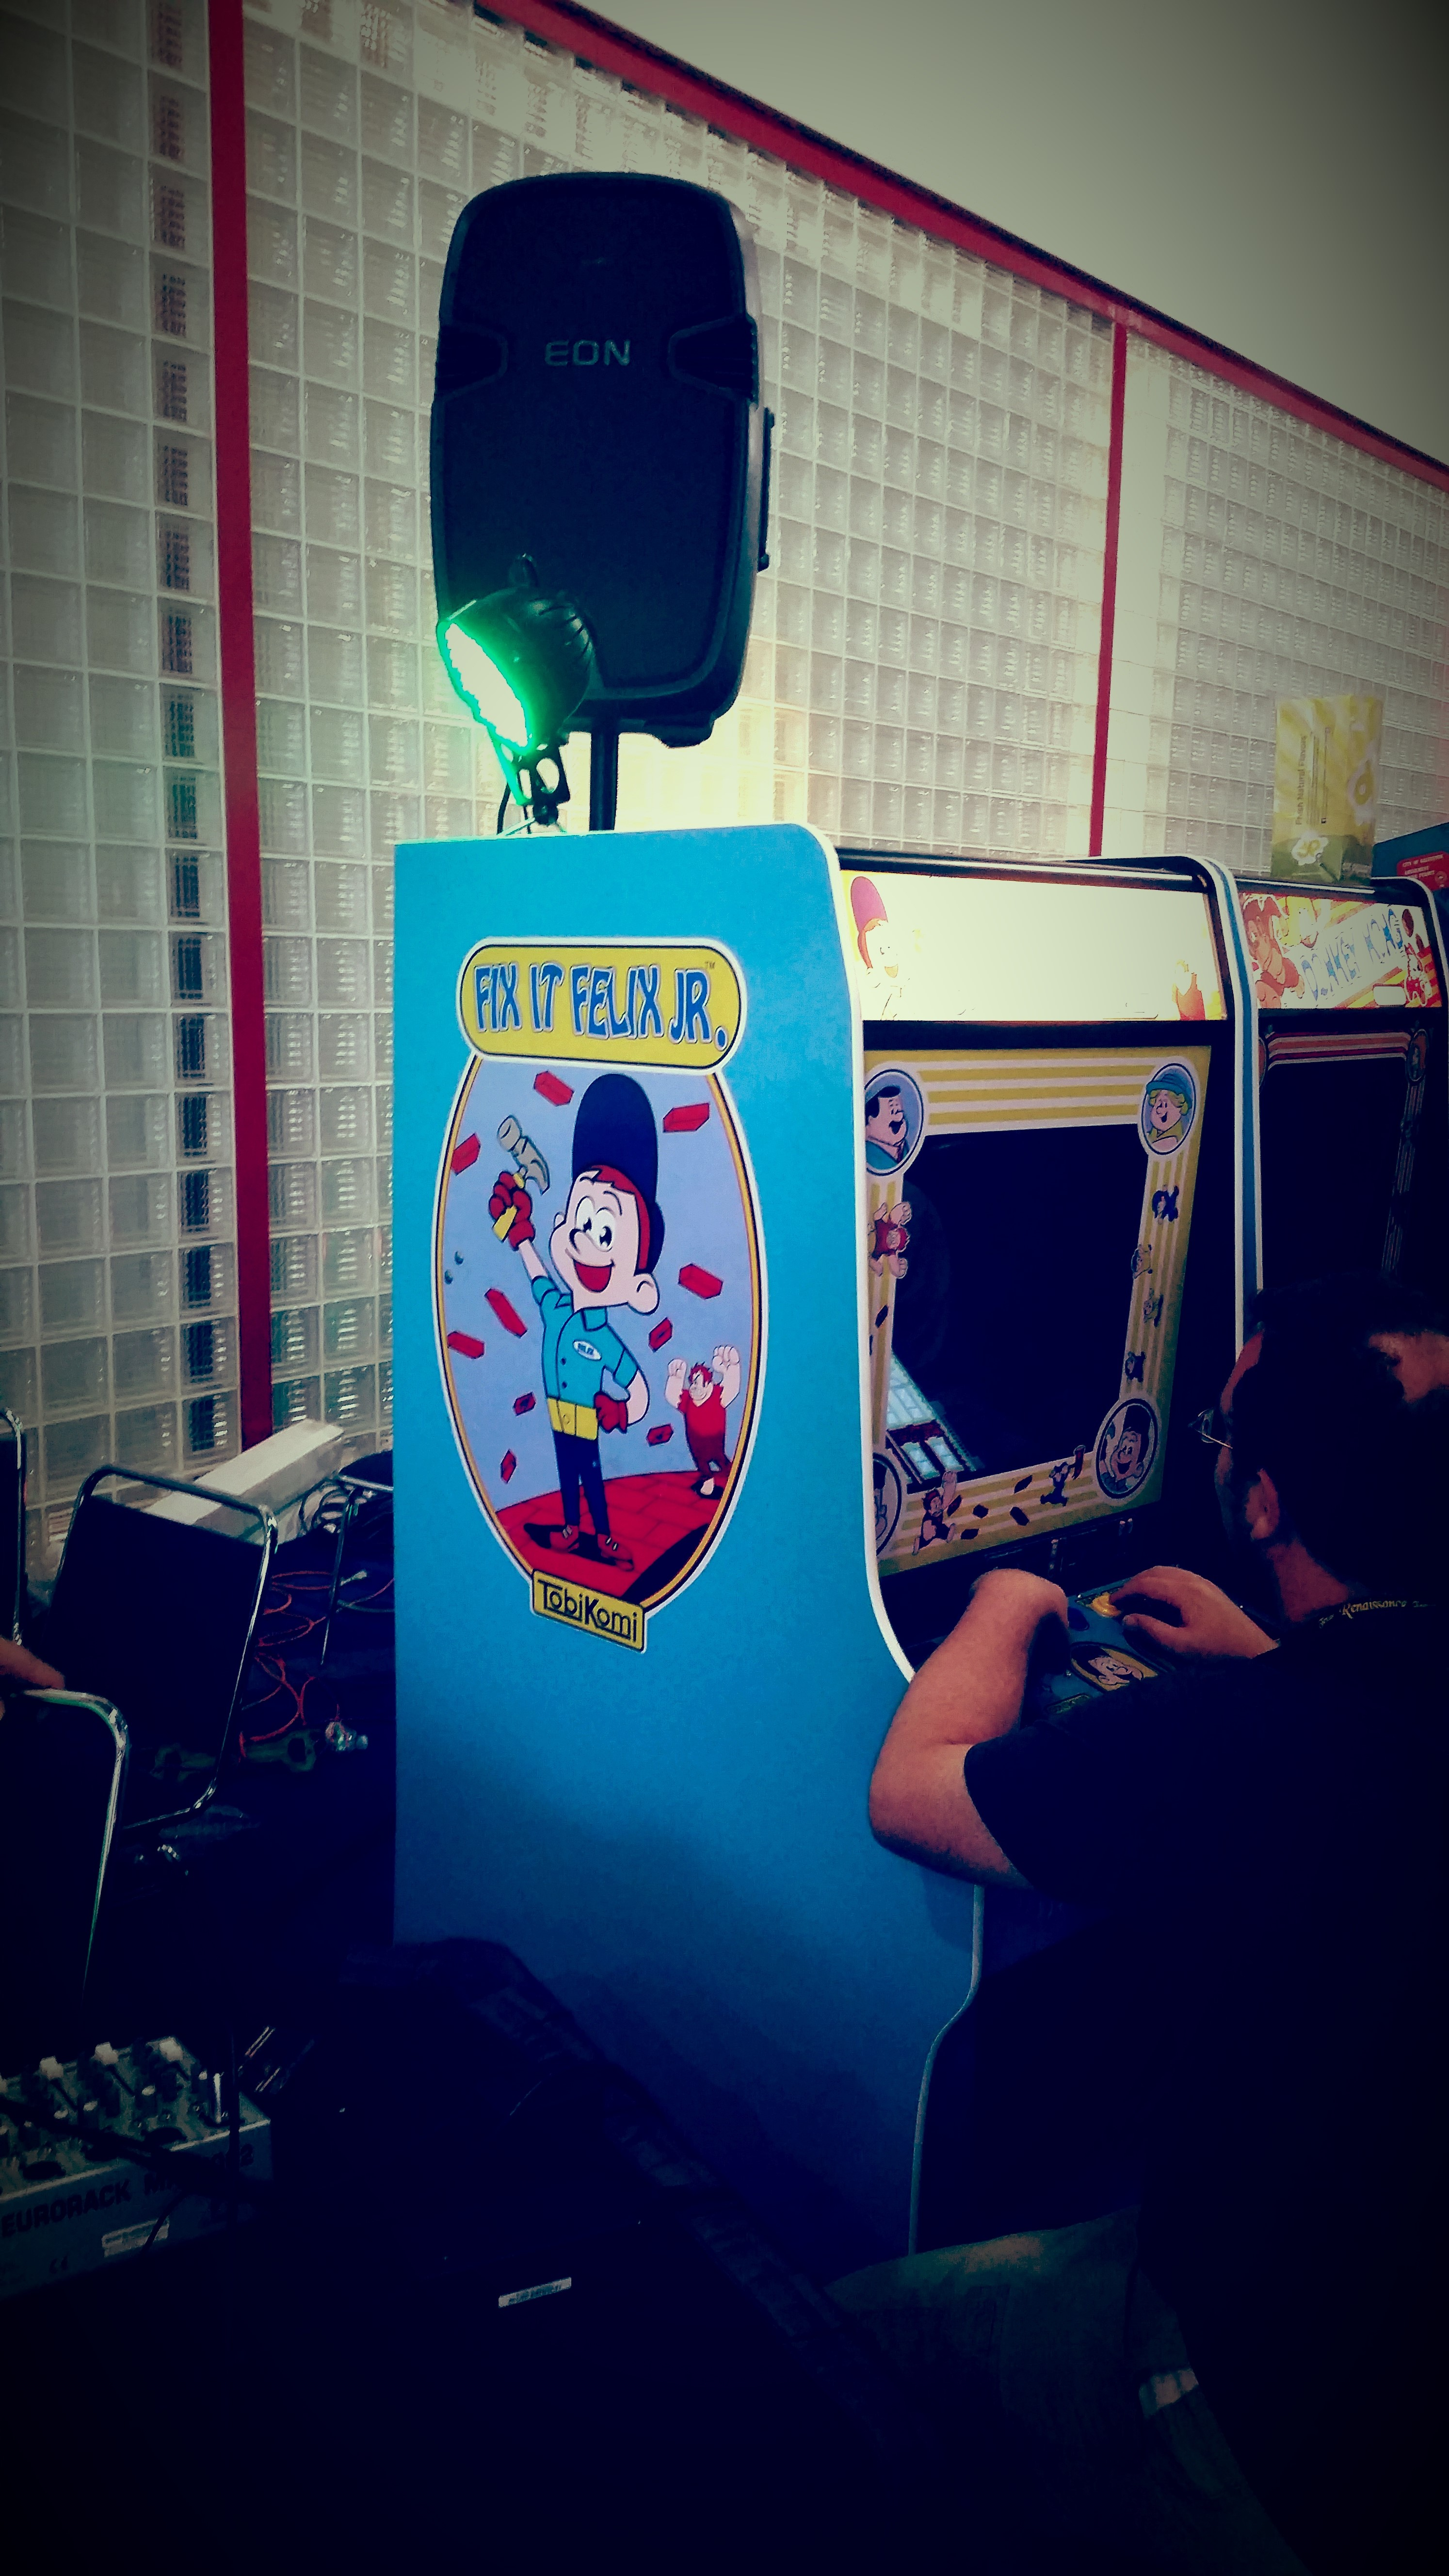 A fully functioning Fix It Felix Jr. arcade game